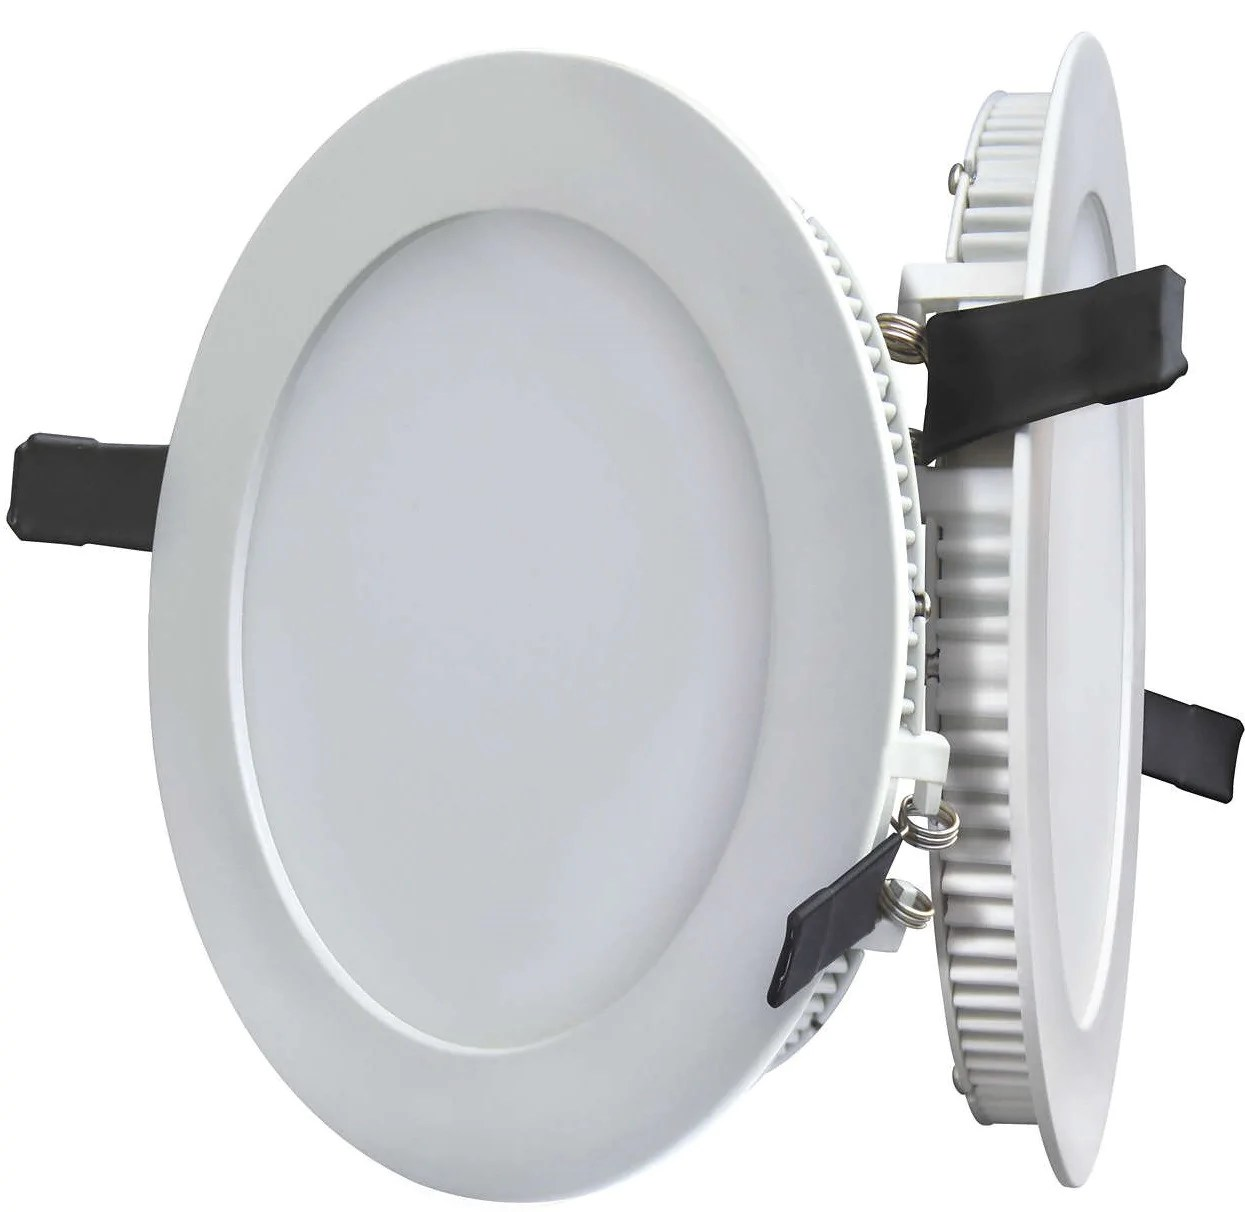 Philips LED Downlight Recessed Spot Light 4000K 7W